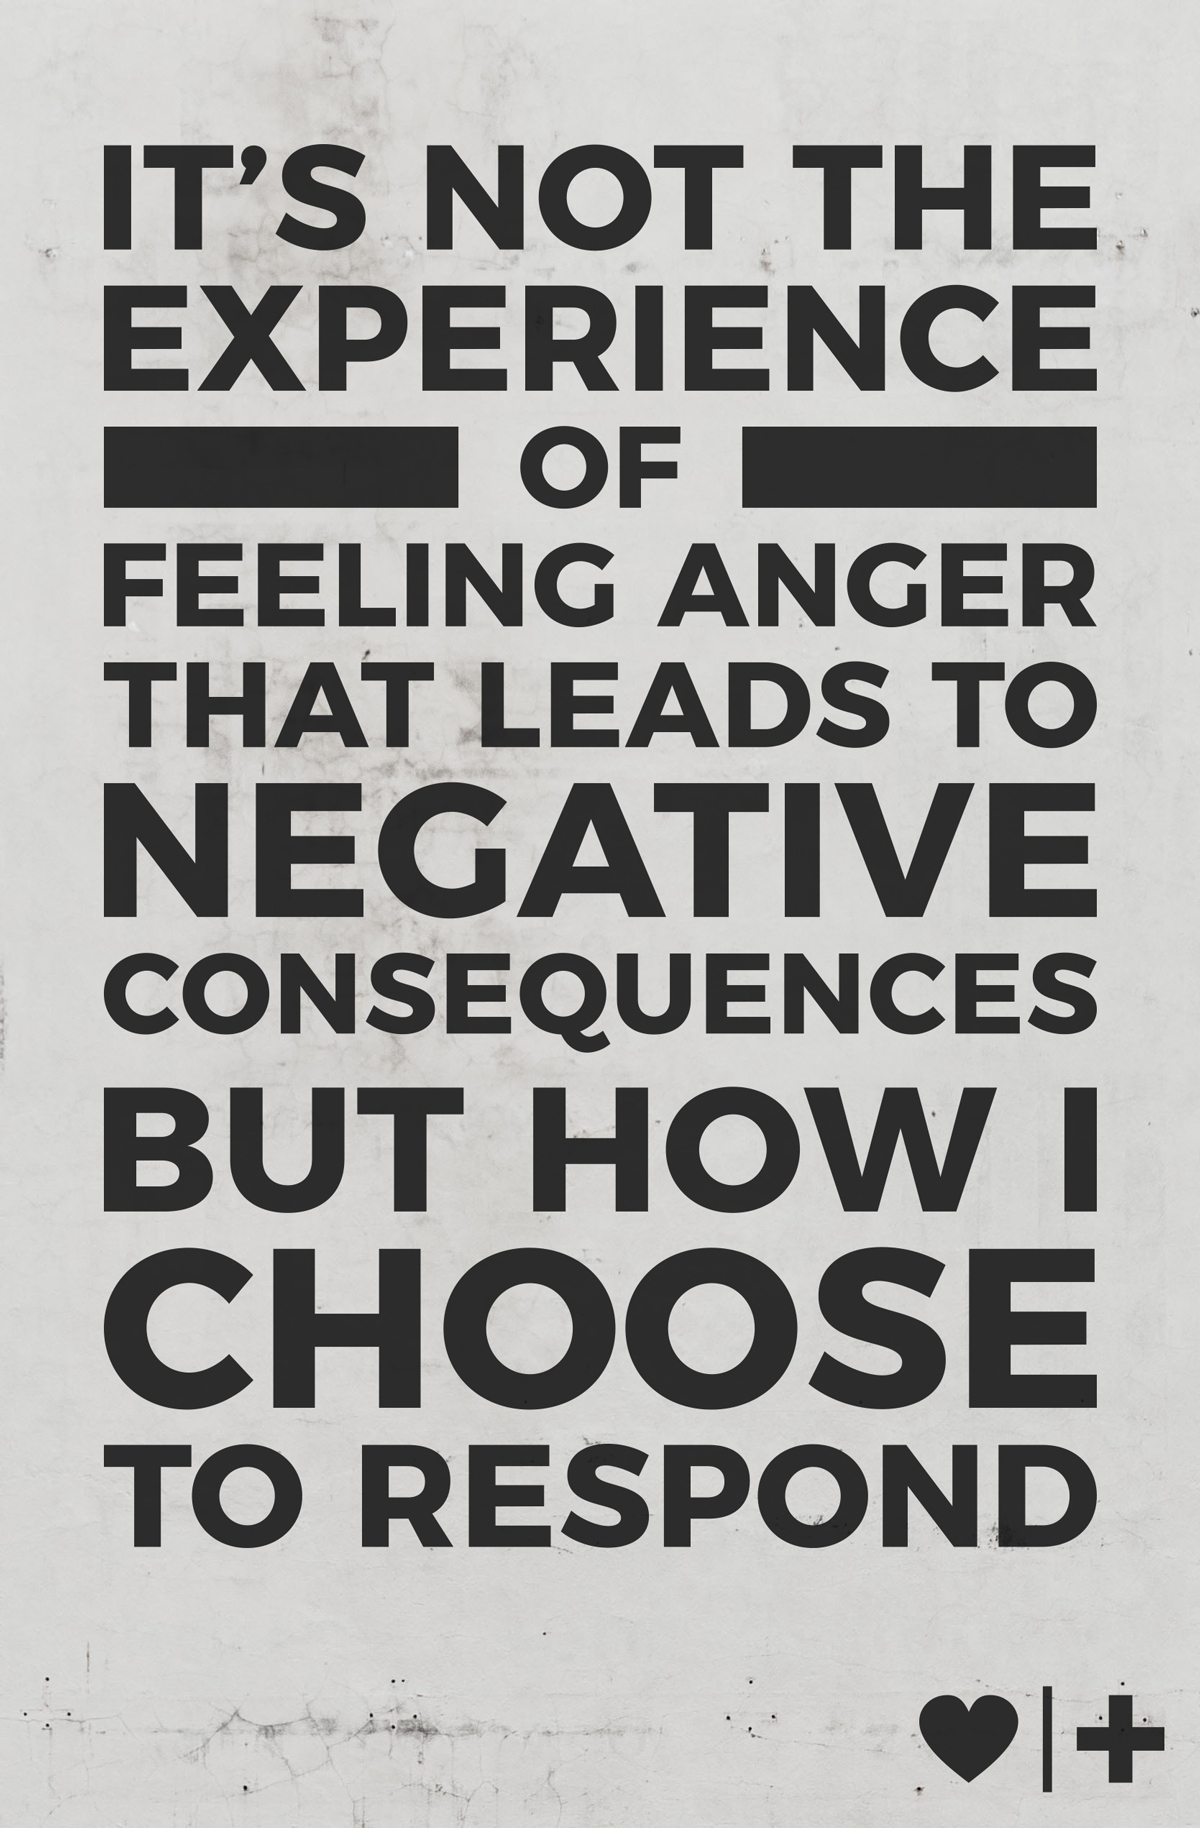 its not the experience of feeling anger that leads to negative consequences but how i choose to respond